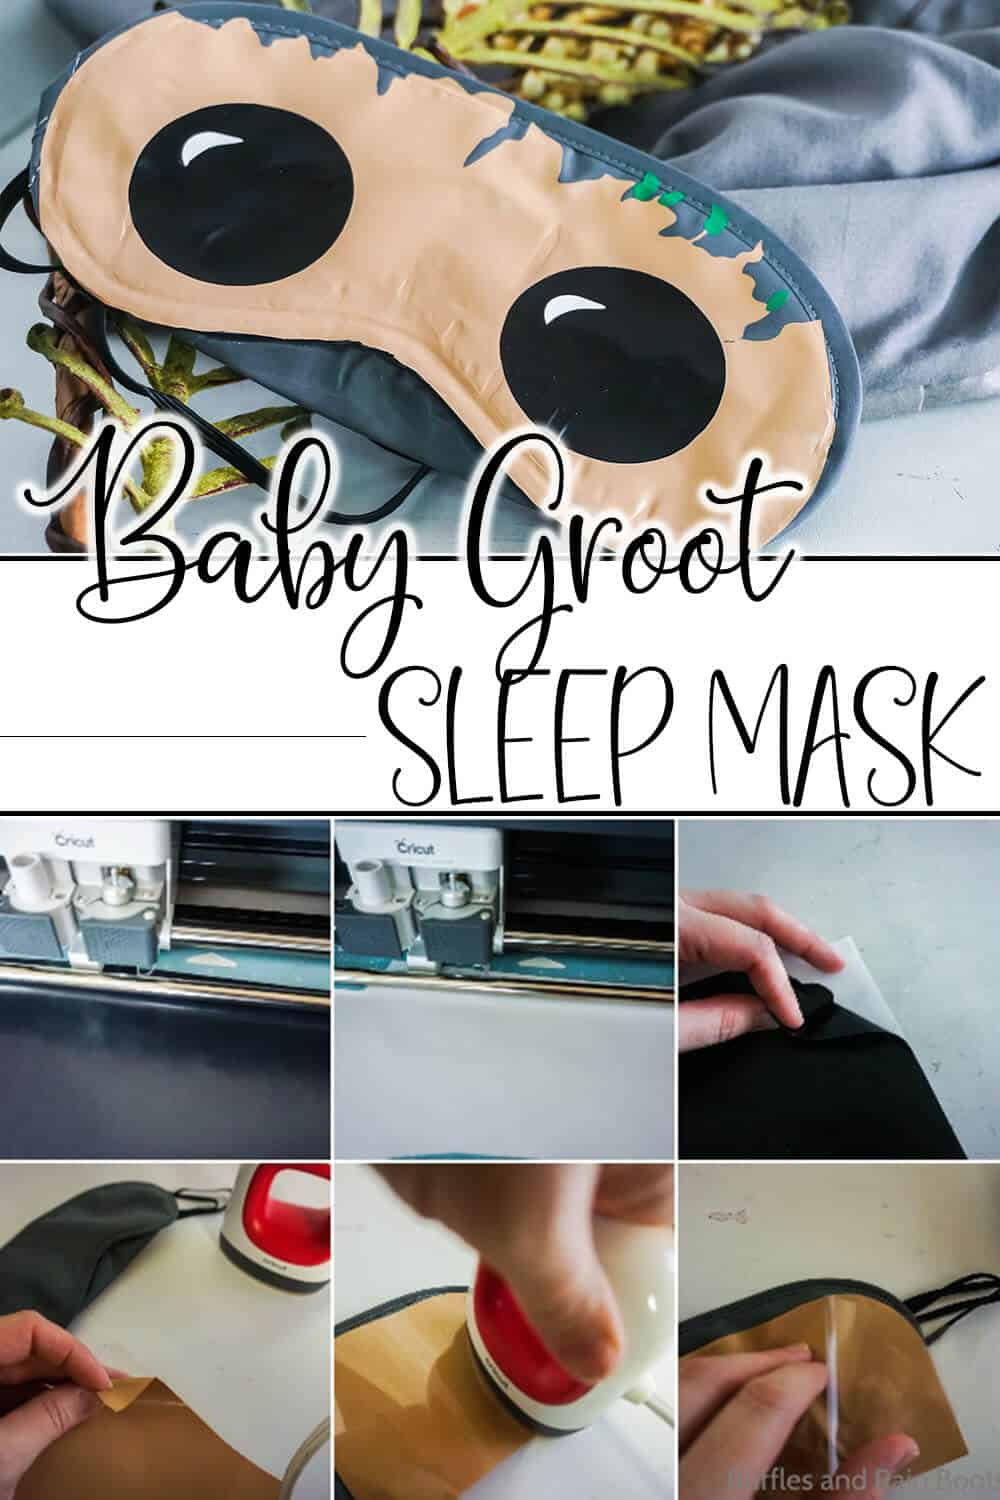 easy diy disney fish extender gift idea with text which reads baby groot sleep mask